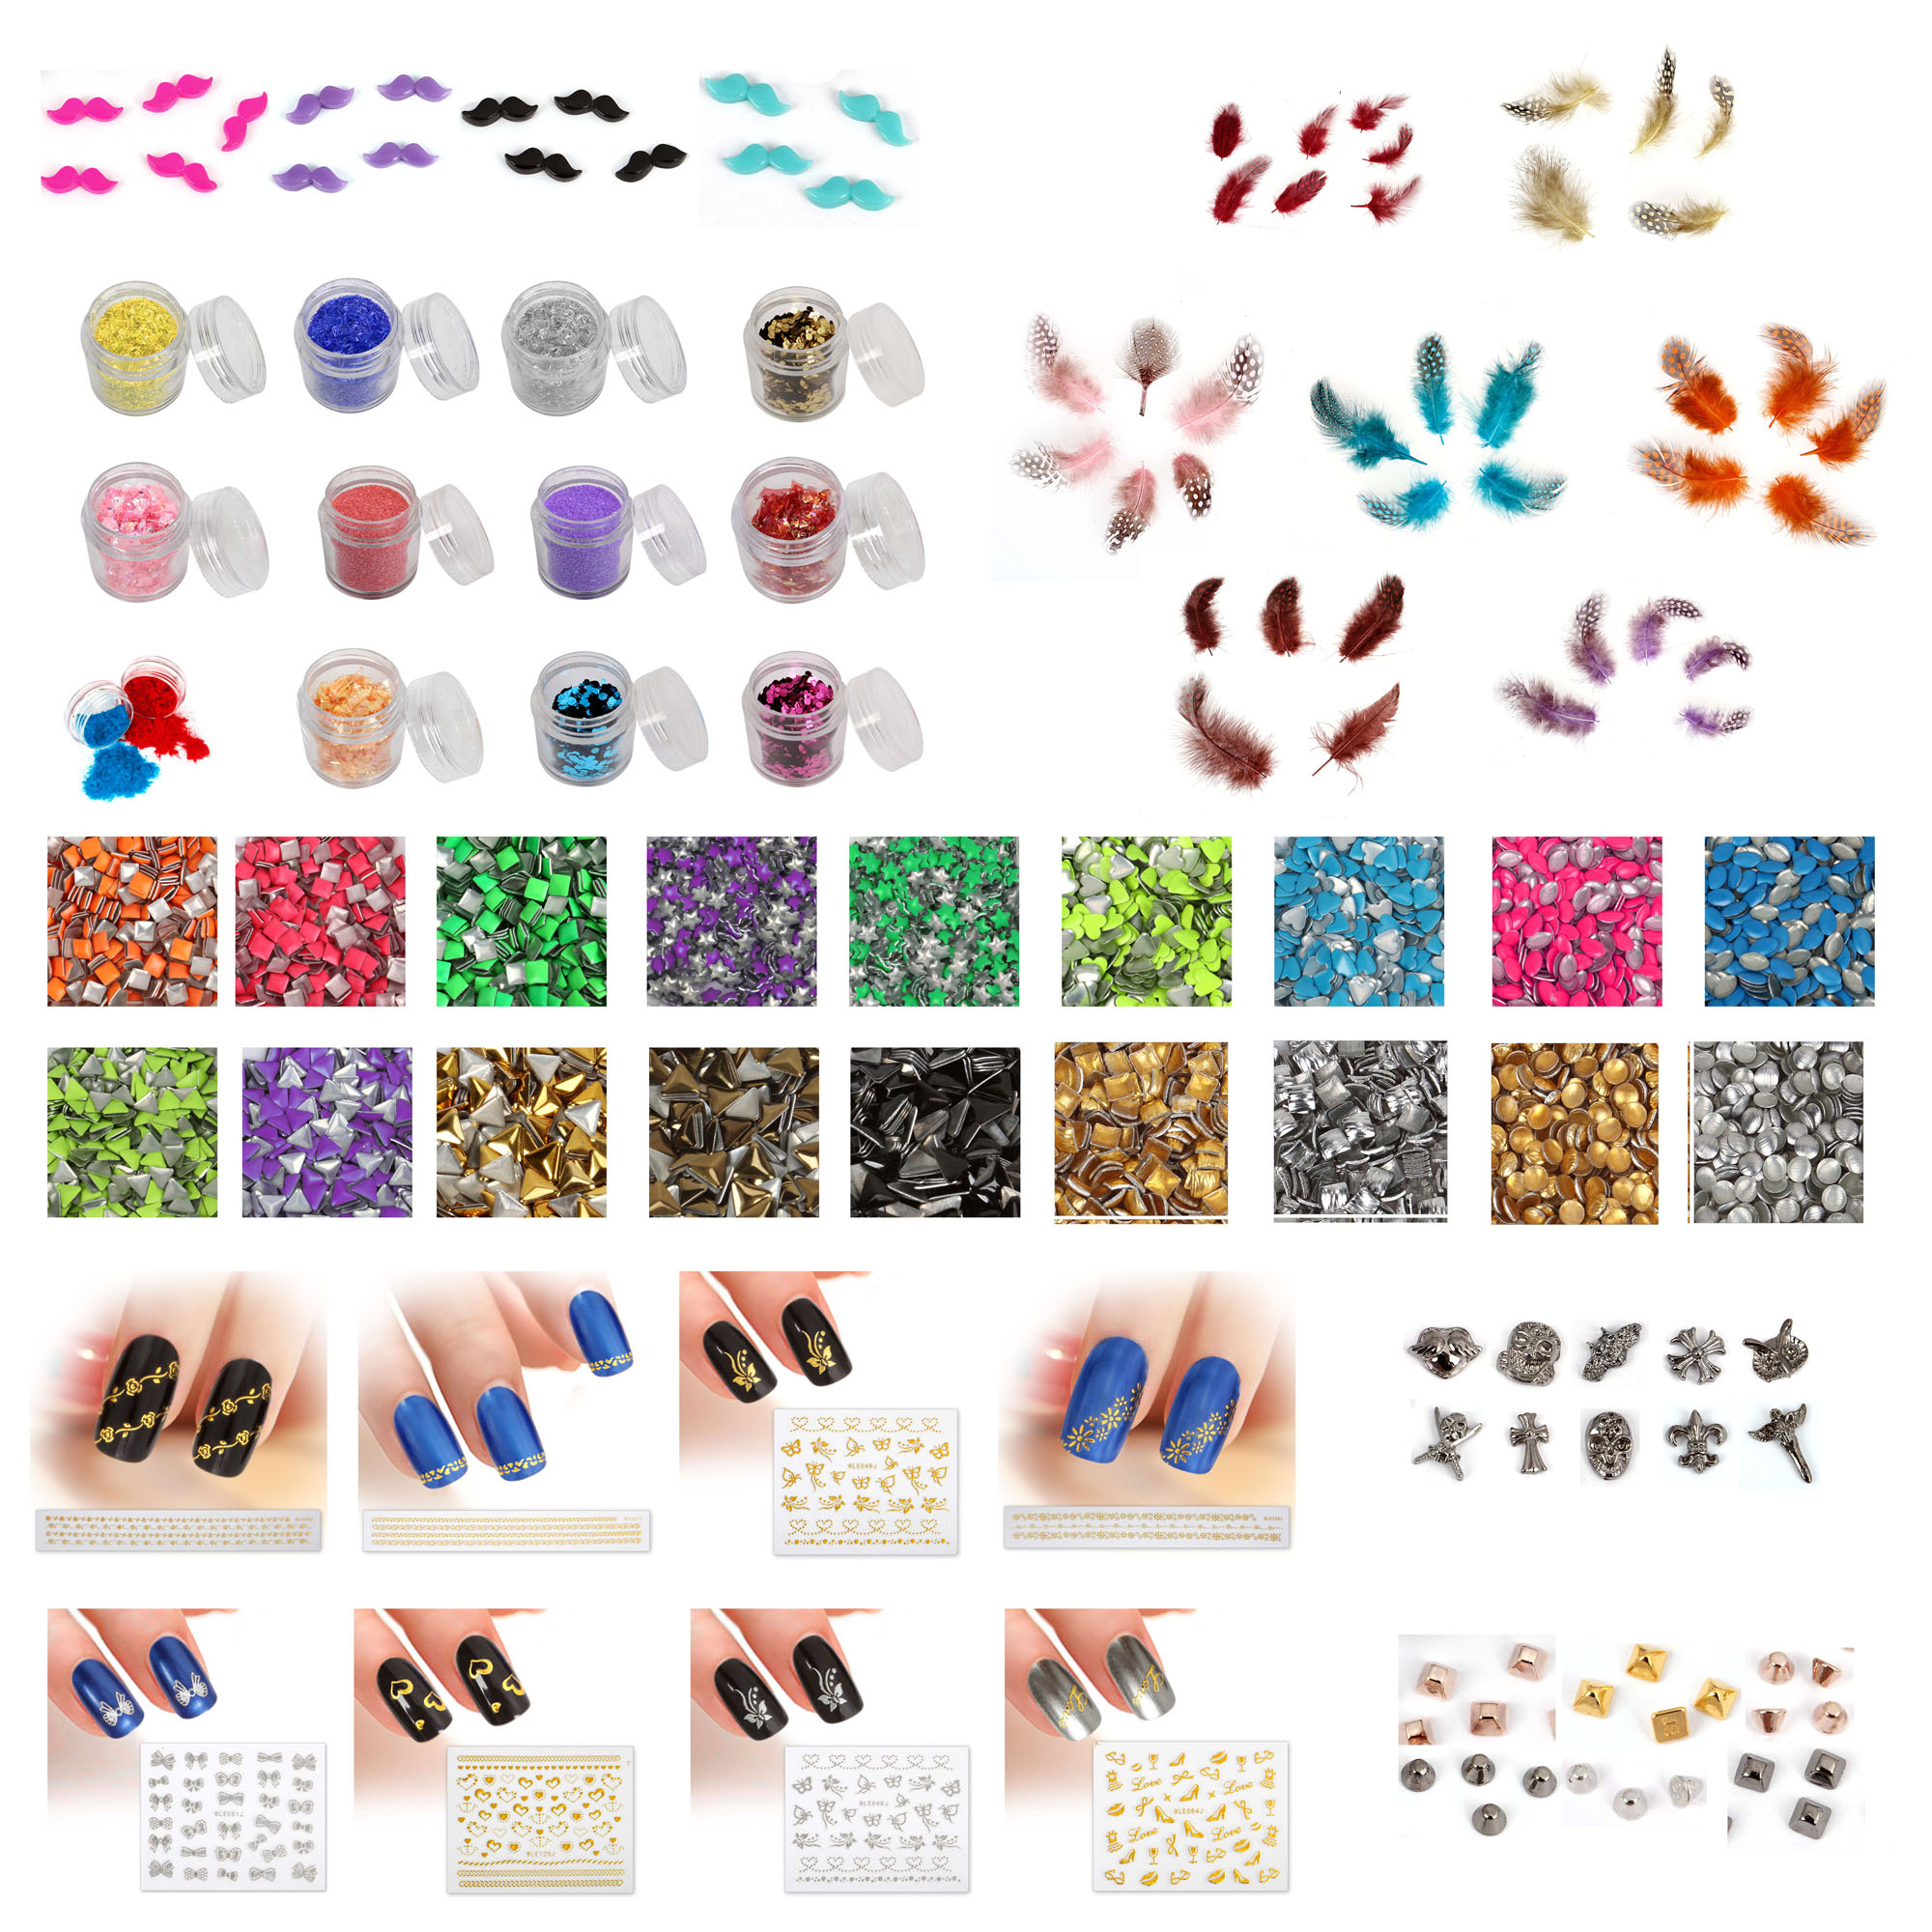 BMC Mystery Surprise 15 Mix Types Nail Art Glitters Stickers Cabochons Studs Kit